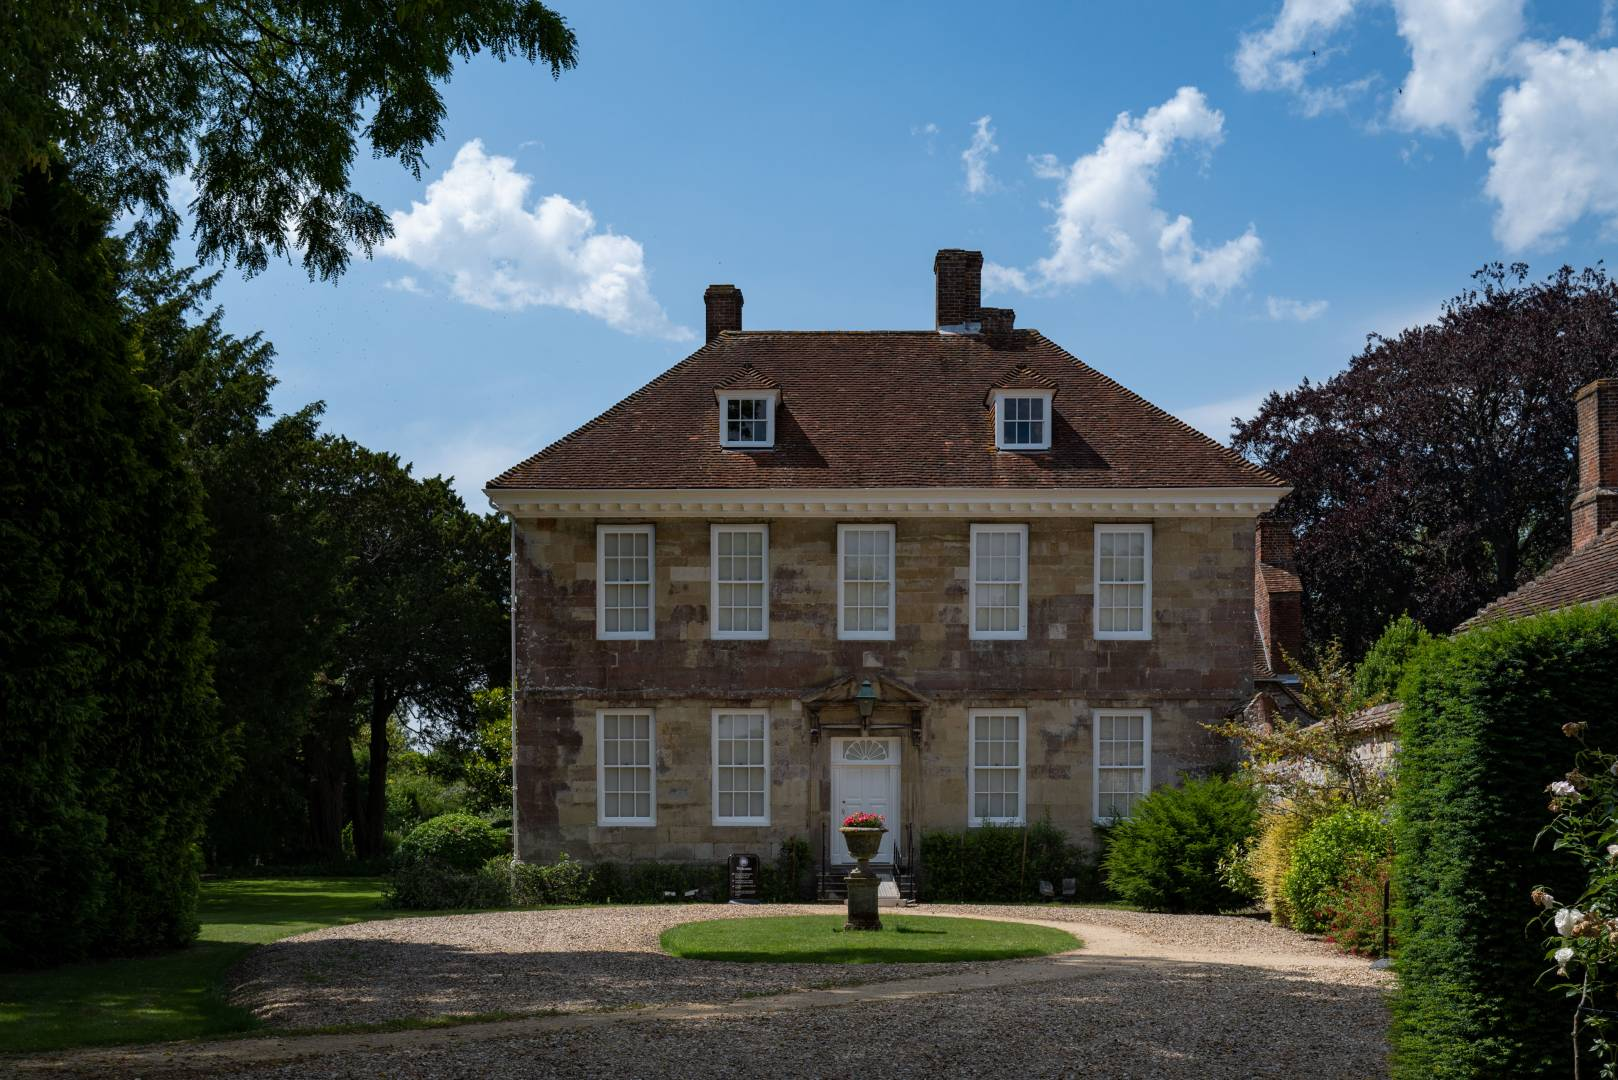 One of the most imposing properties in the cathedral close, Arundells was for home of the former British Prime Minister, Sir Edward Heath. It is open to the public.